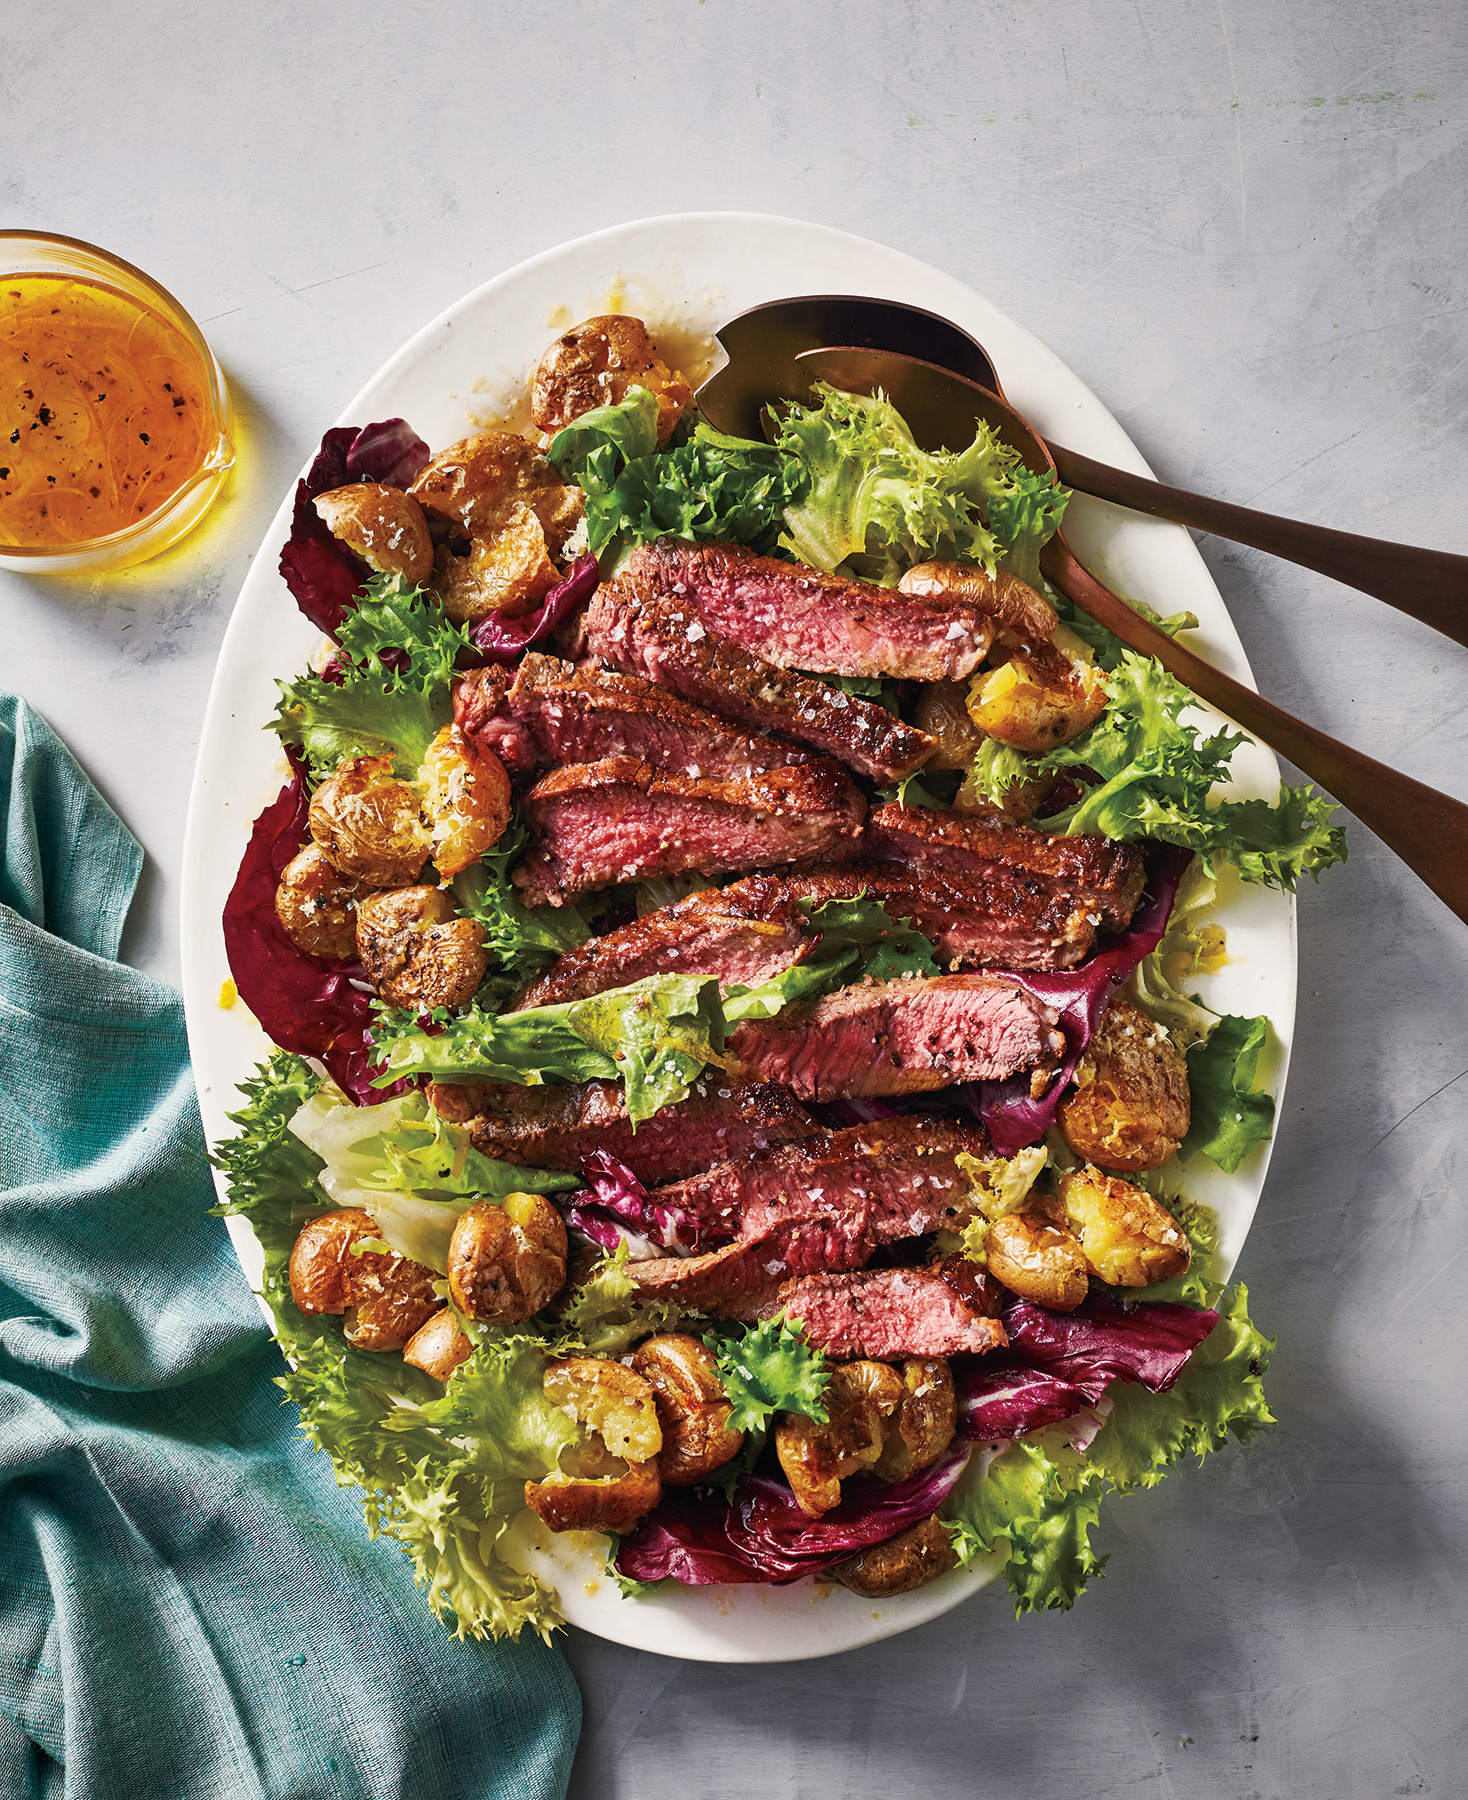 Easy Dinner Recipes: Steak Salad With Crispy Potatoes and Lemon-Parmesan Dressing